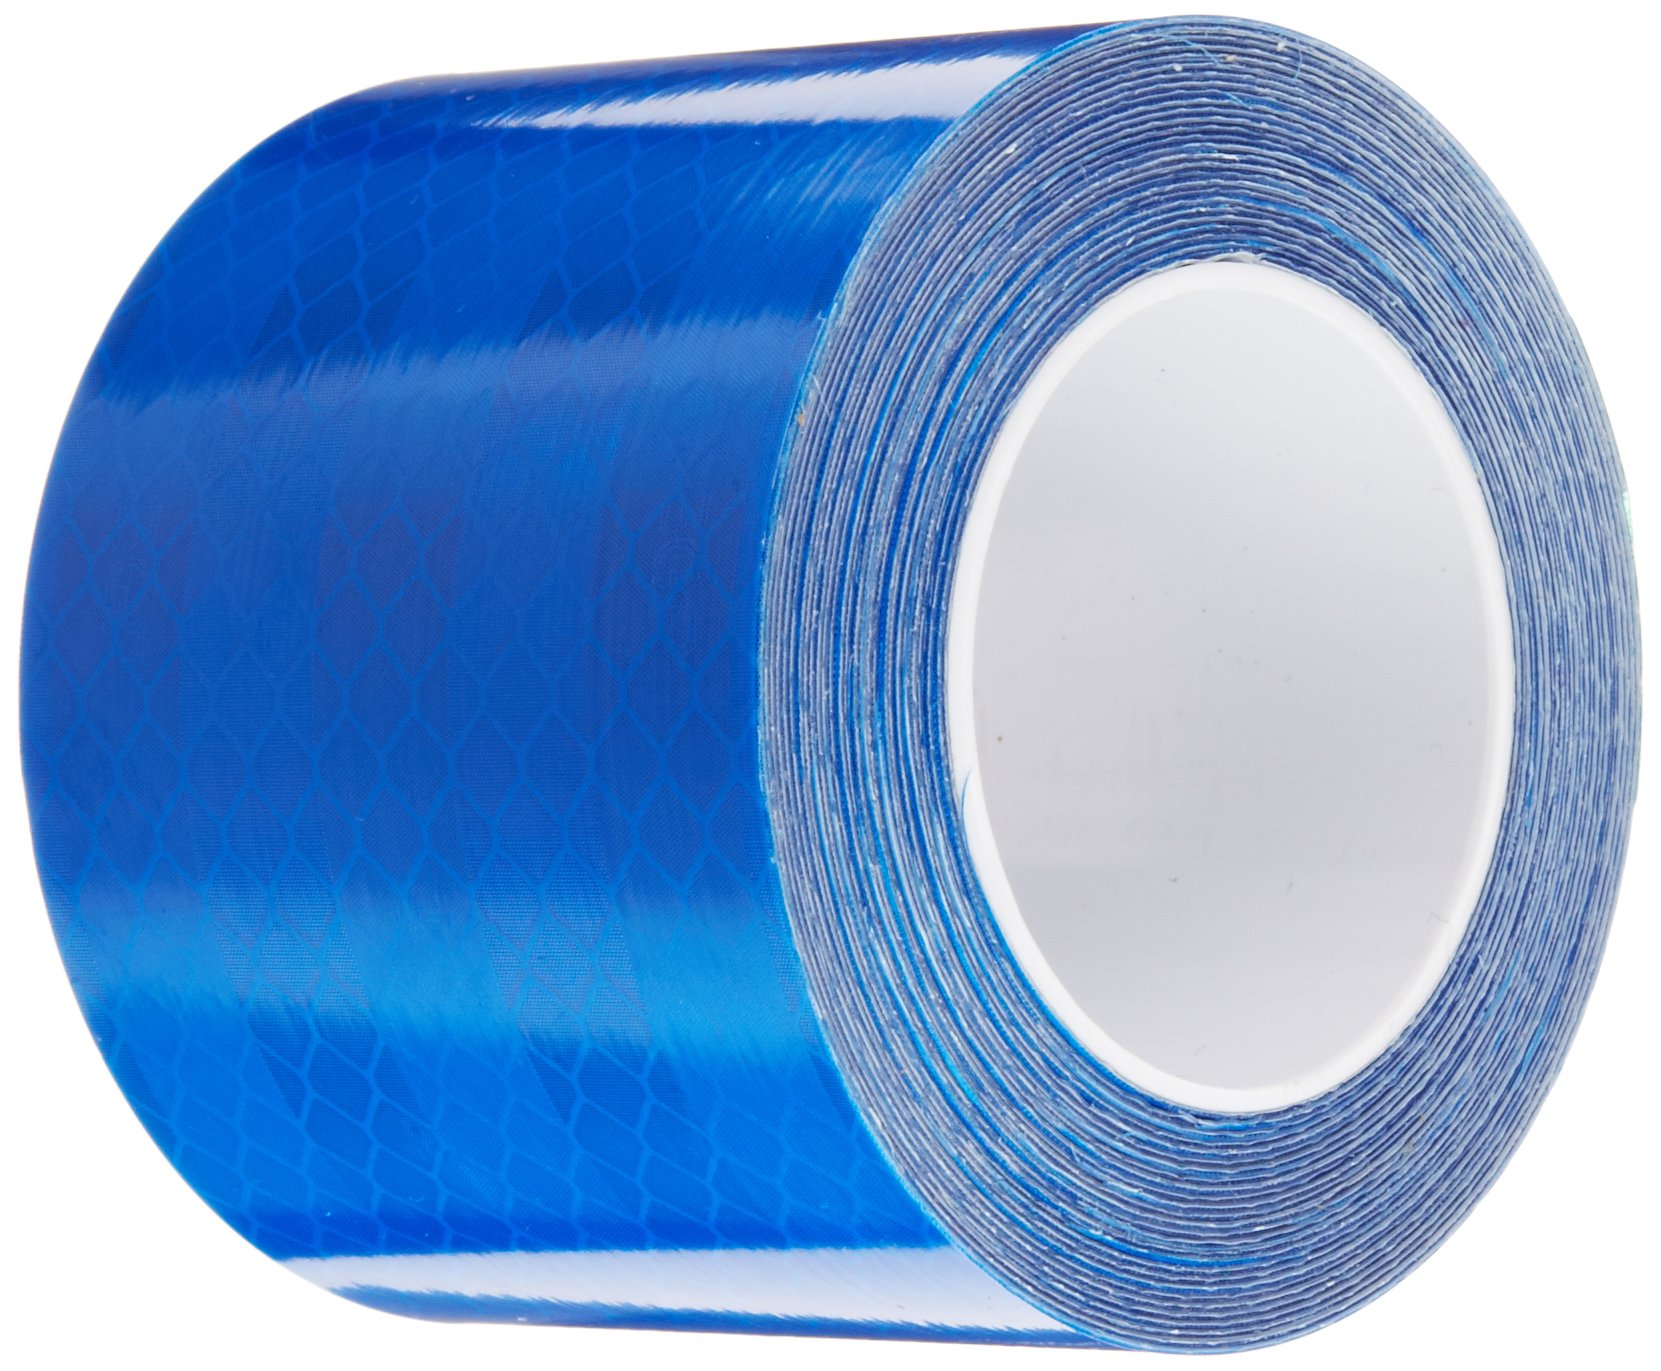 3M 3435 Blue Micro Prismatic Sheeting Reflective Tape, 2'' x 5 yd (1 Roll)